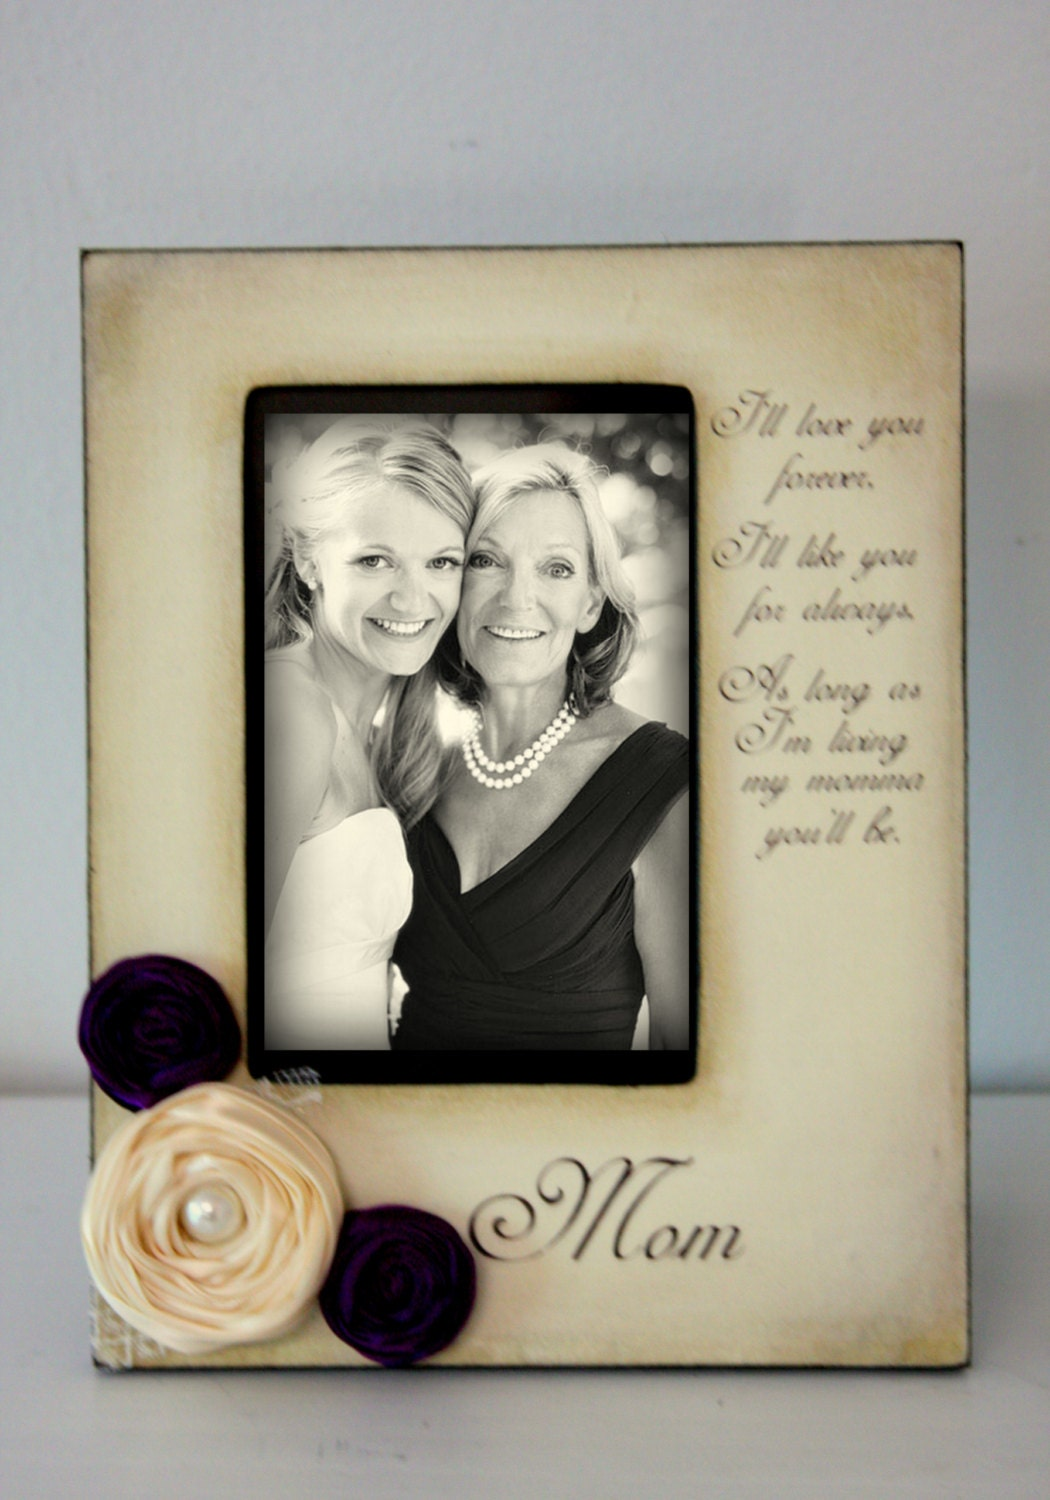 Wedding Gift Ideas From Parents To Daughter : Mother Daughter Son Wedding Frame Gift Bride by DeSiLuCoLLecTioN